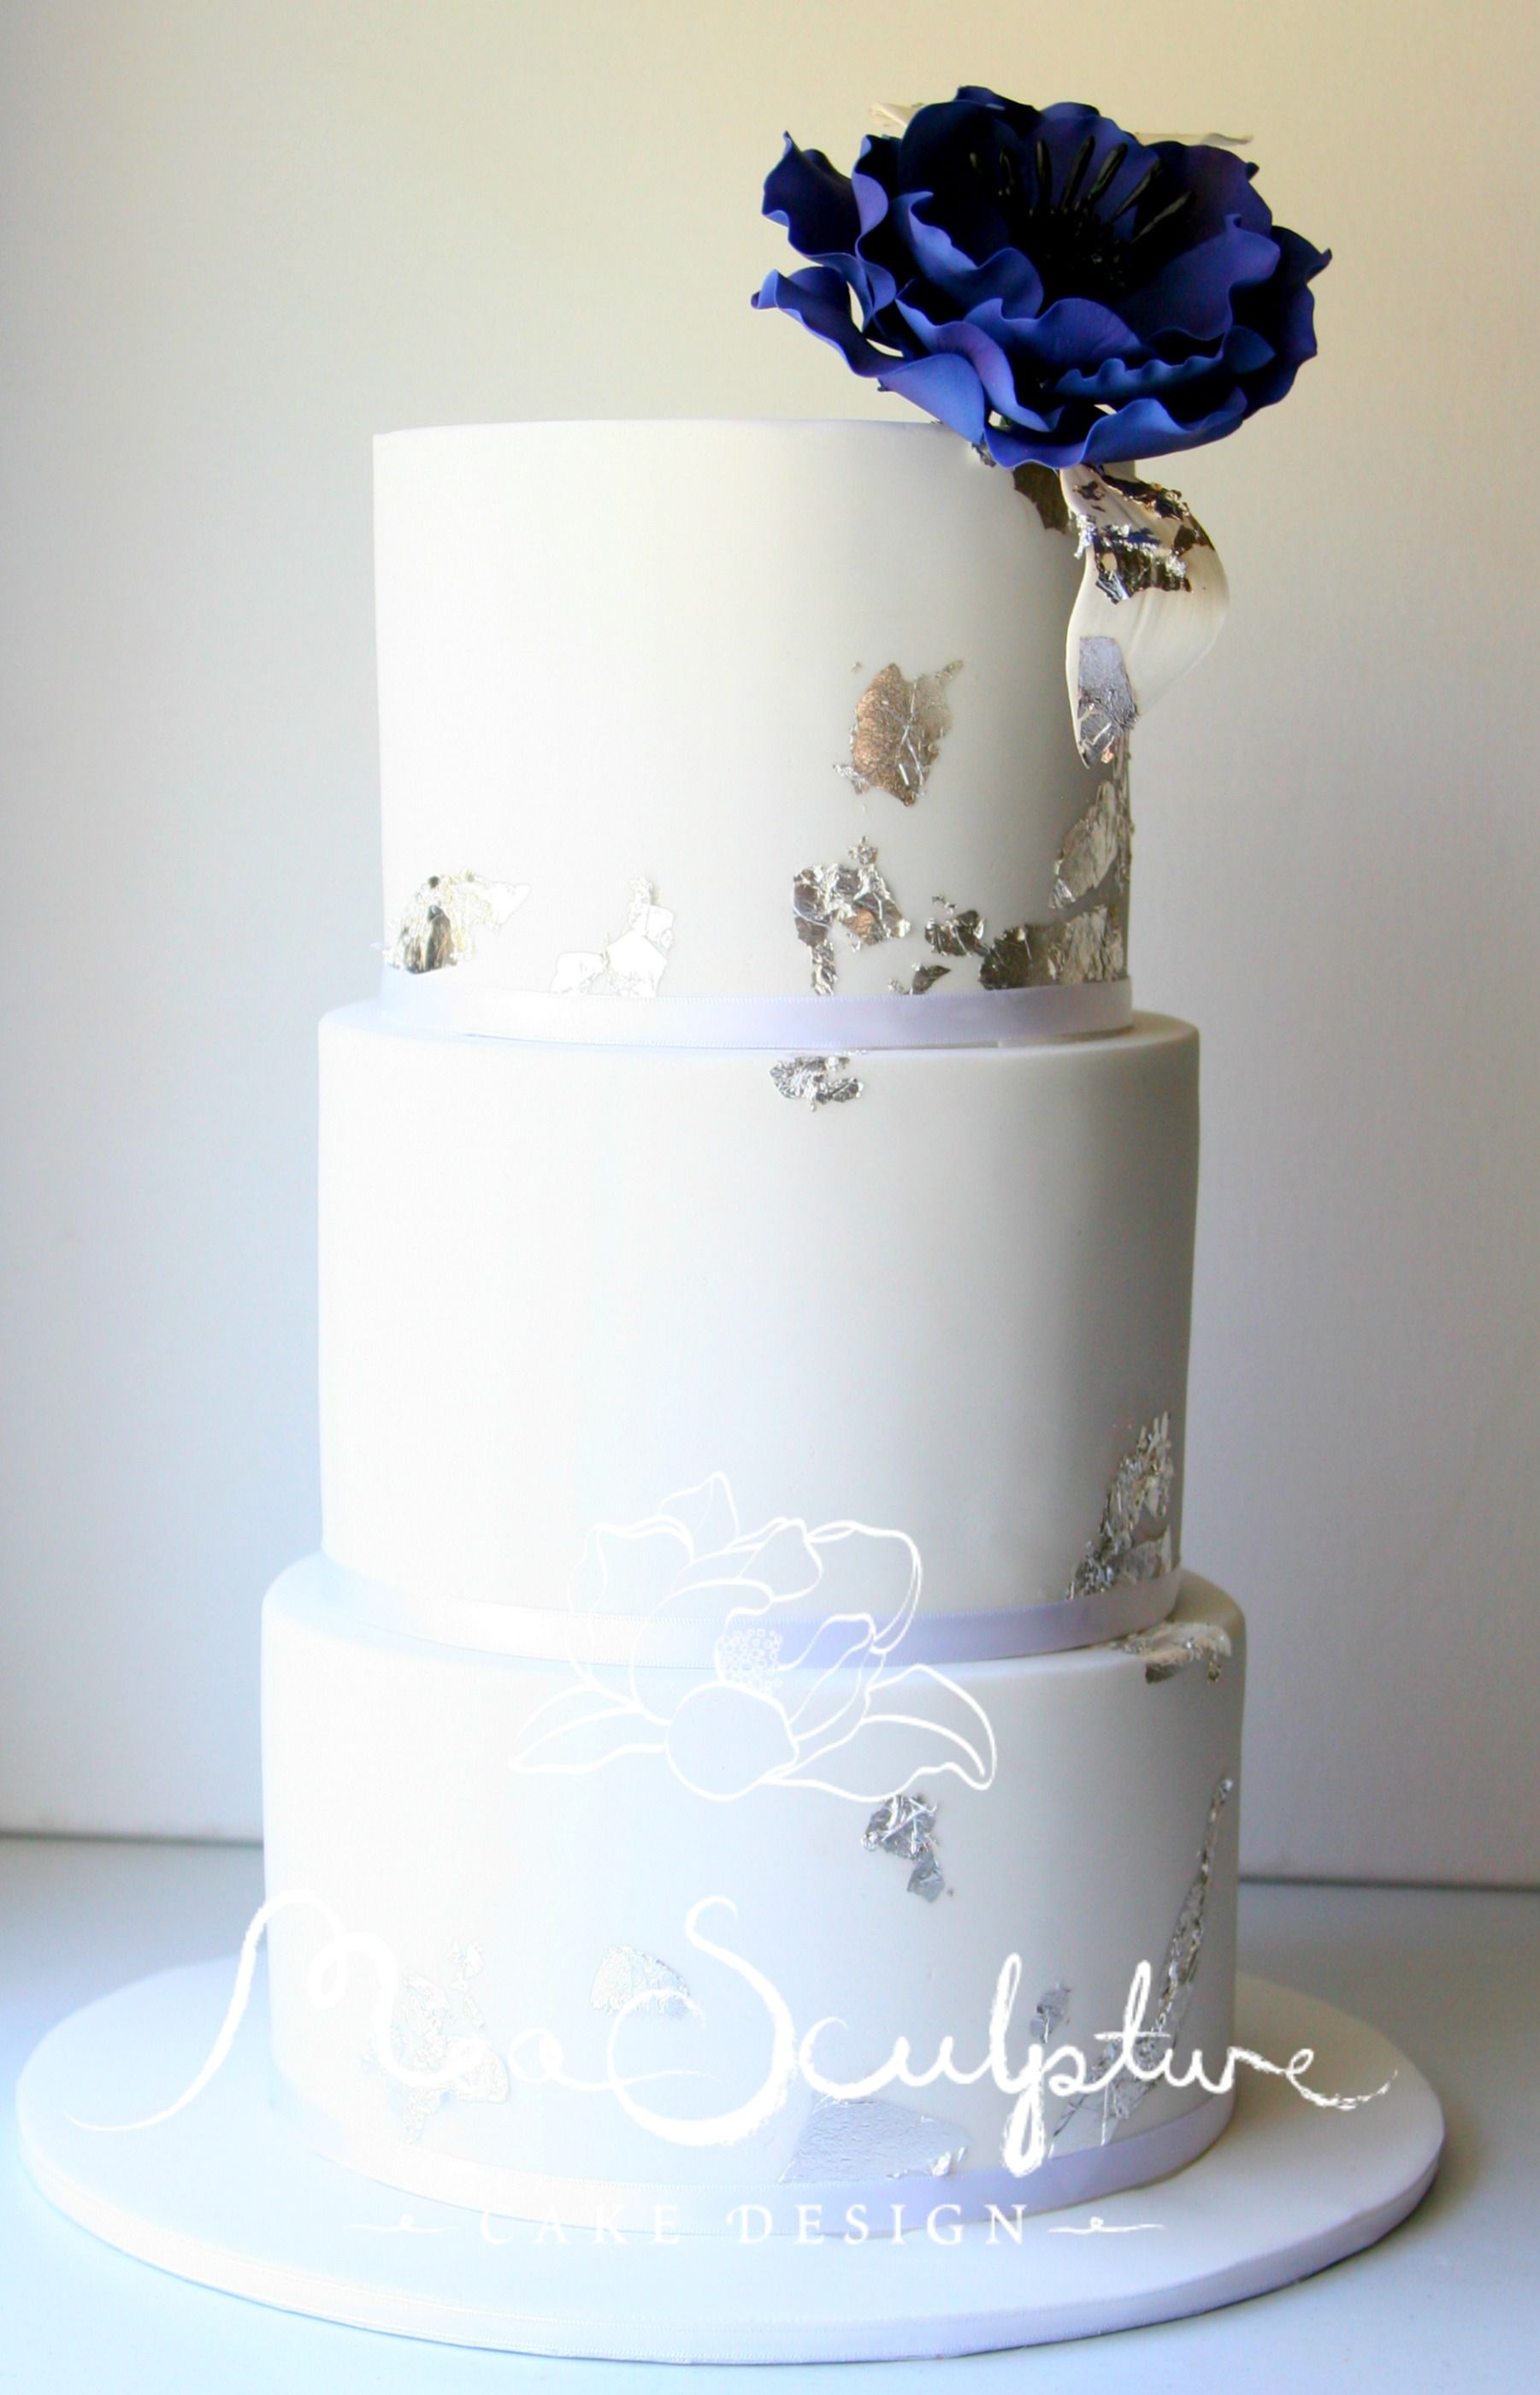 Eggplant purple open rose silver leaf and white three tier wedding ...